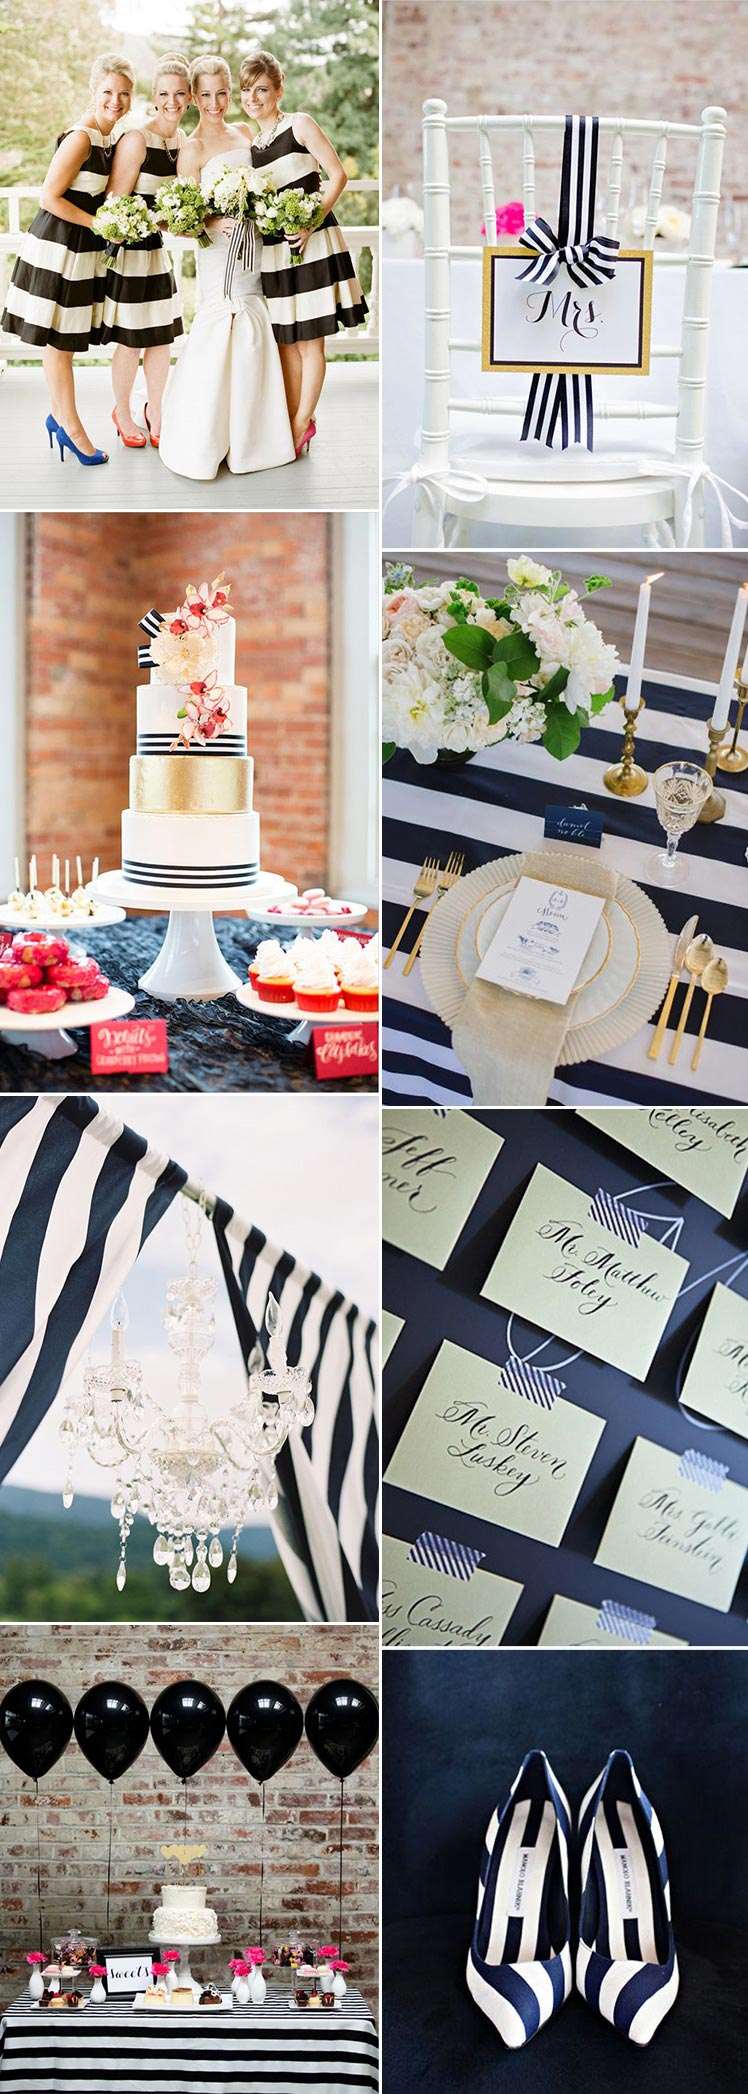 Stripe wedding inspiration for your special day